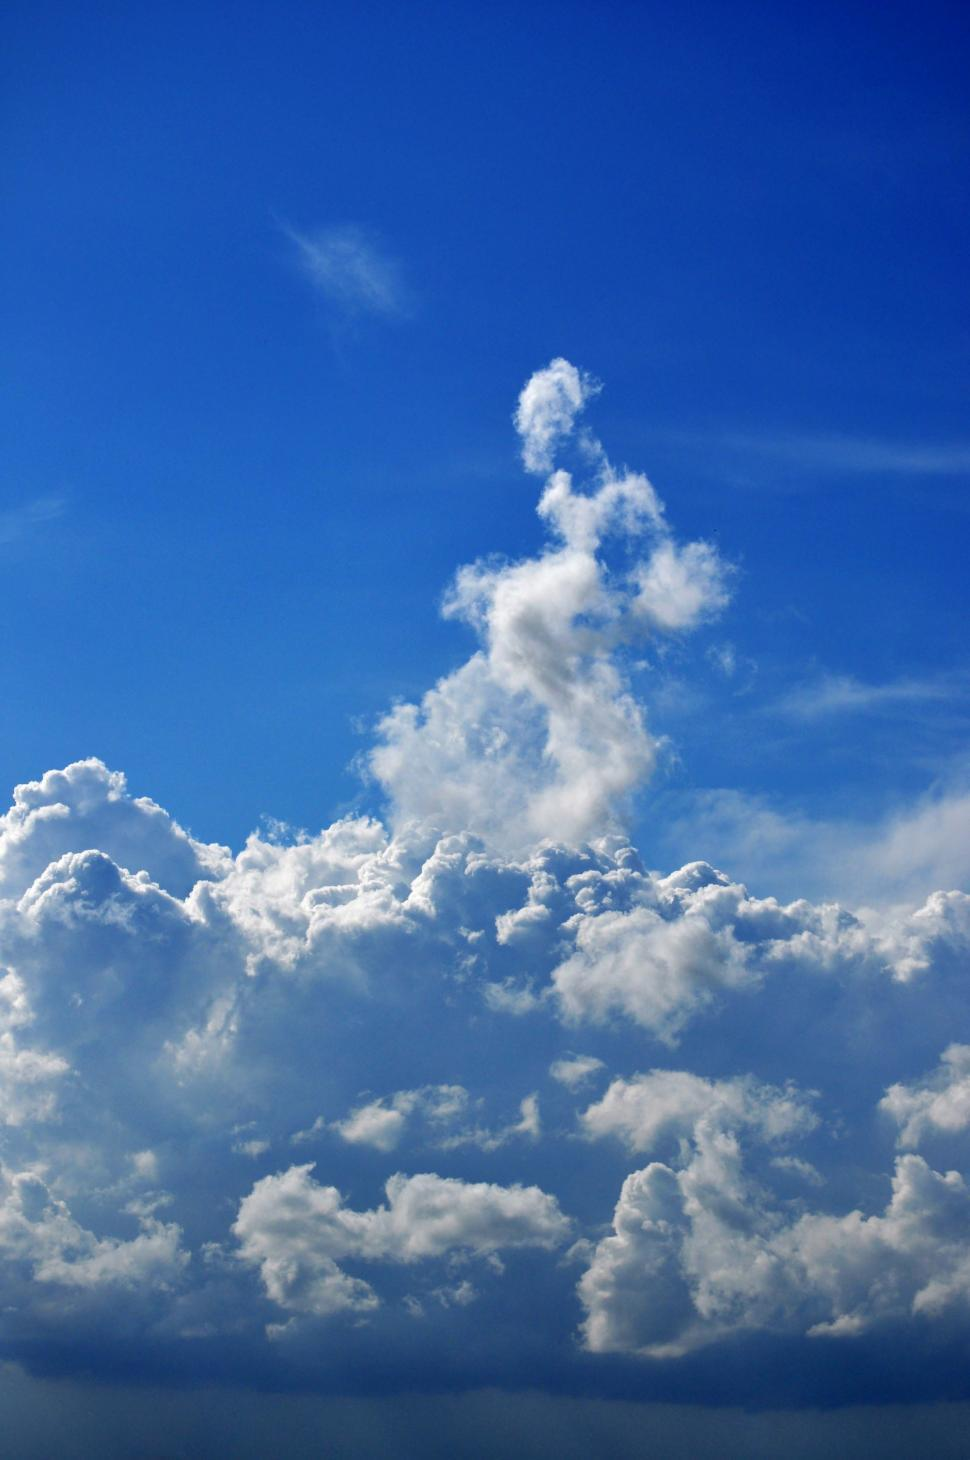 Download Free Stock Photo of Clouds in the sky portrait